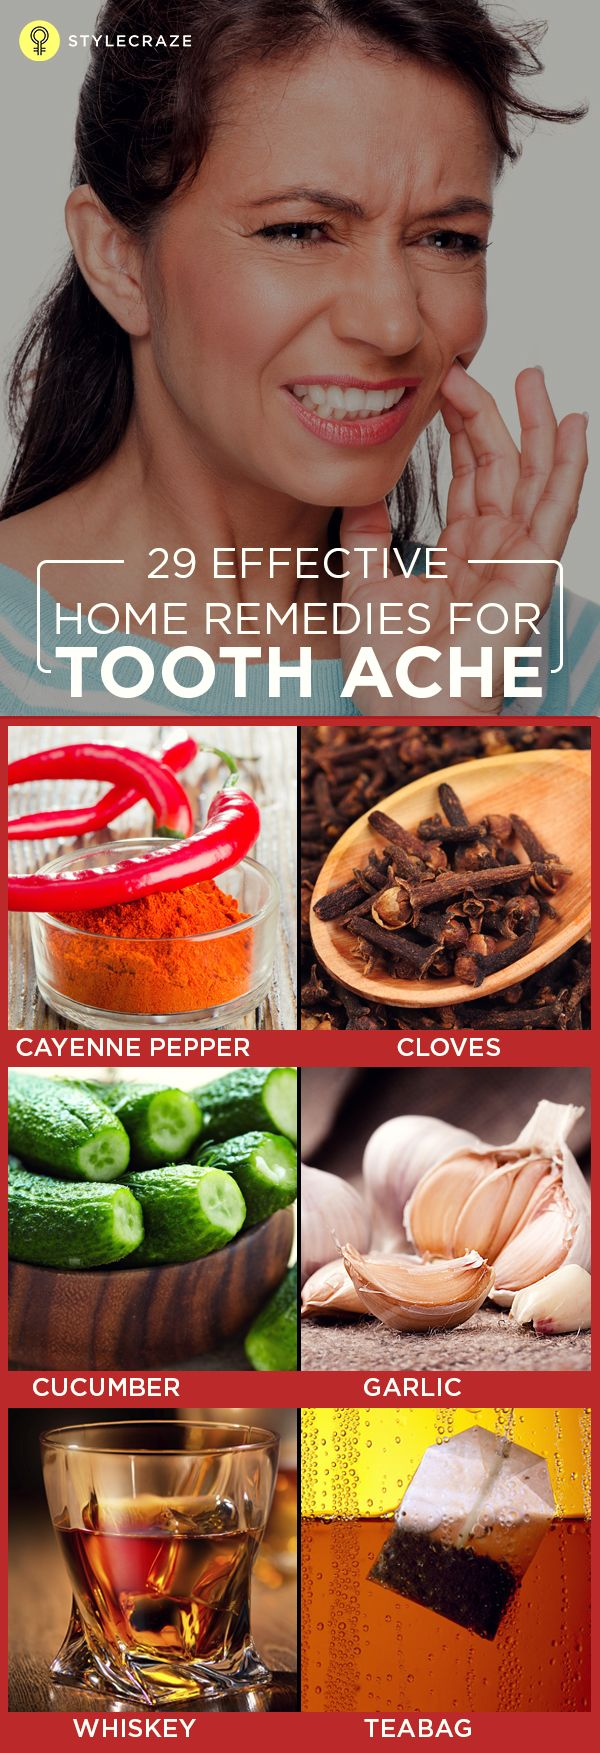 18 Effective Home Remedies For Toothache